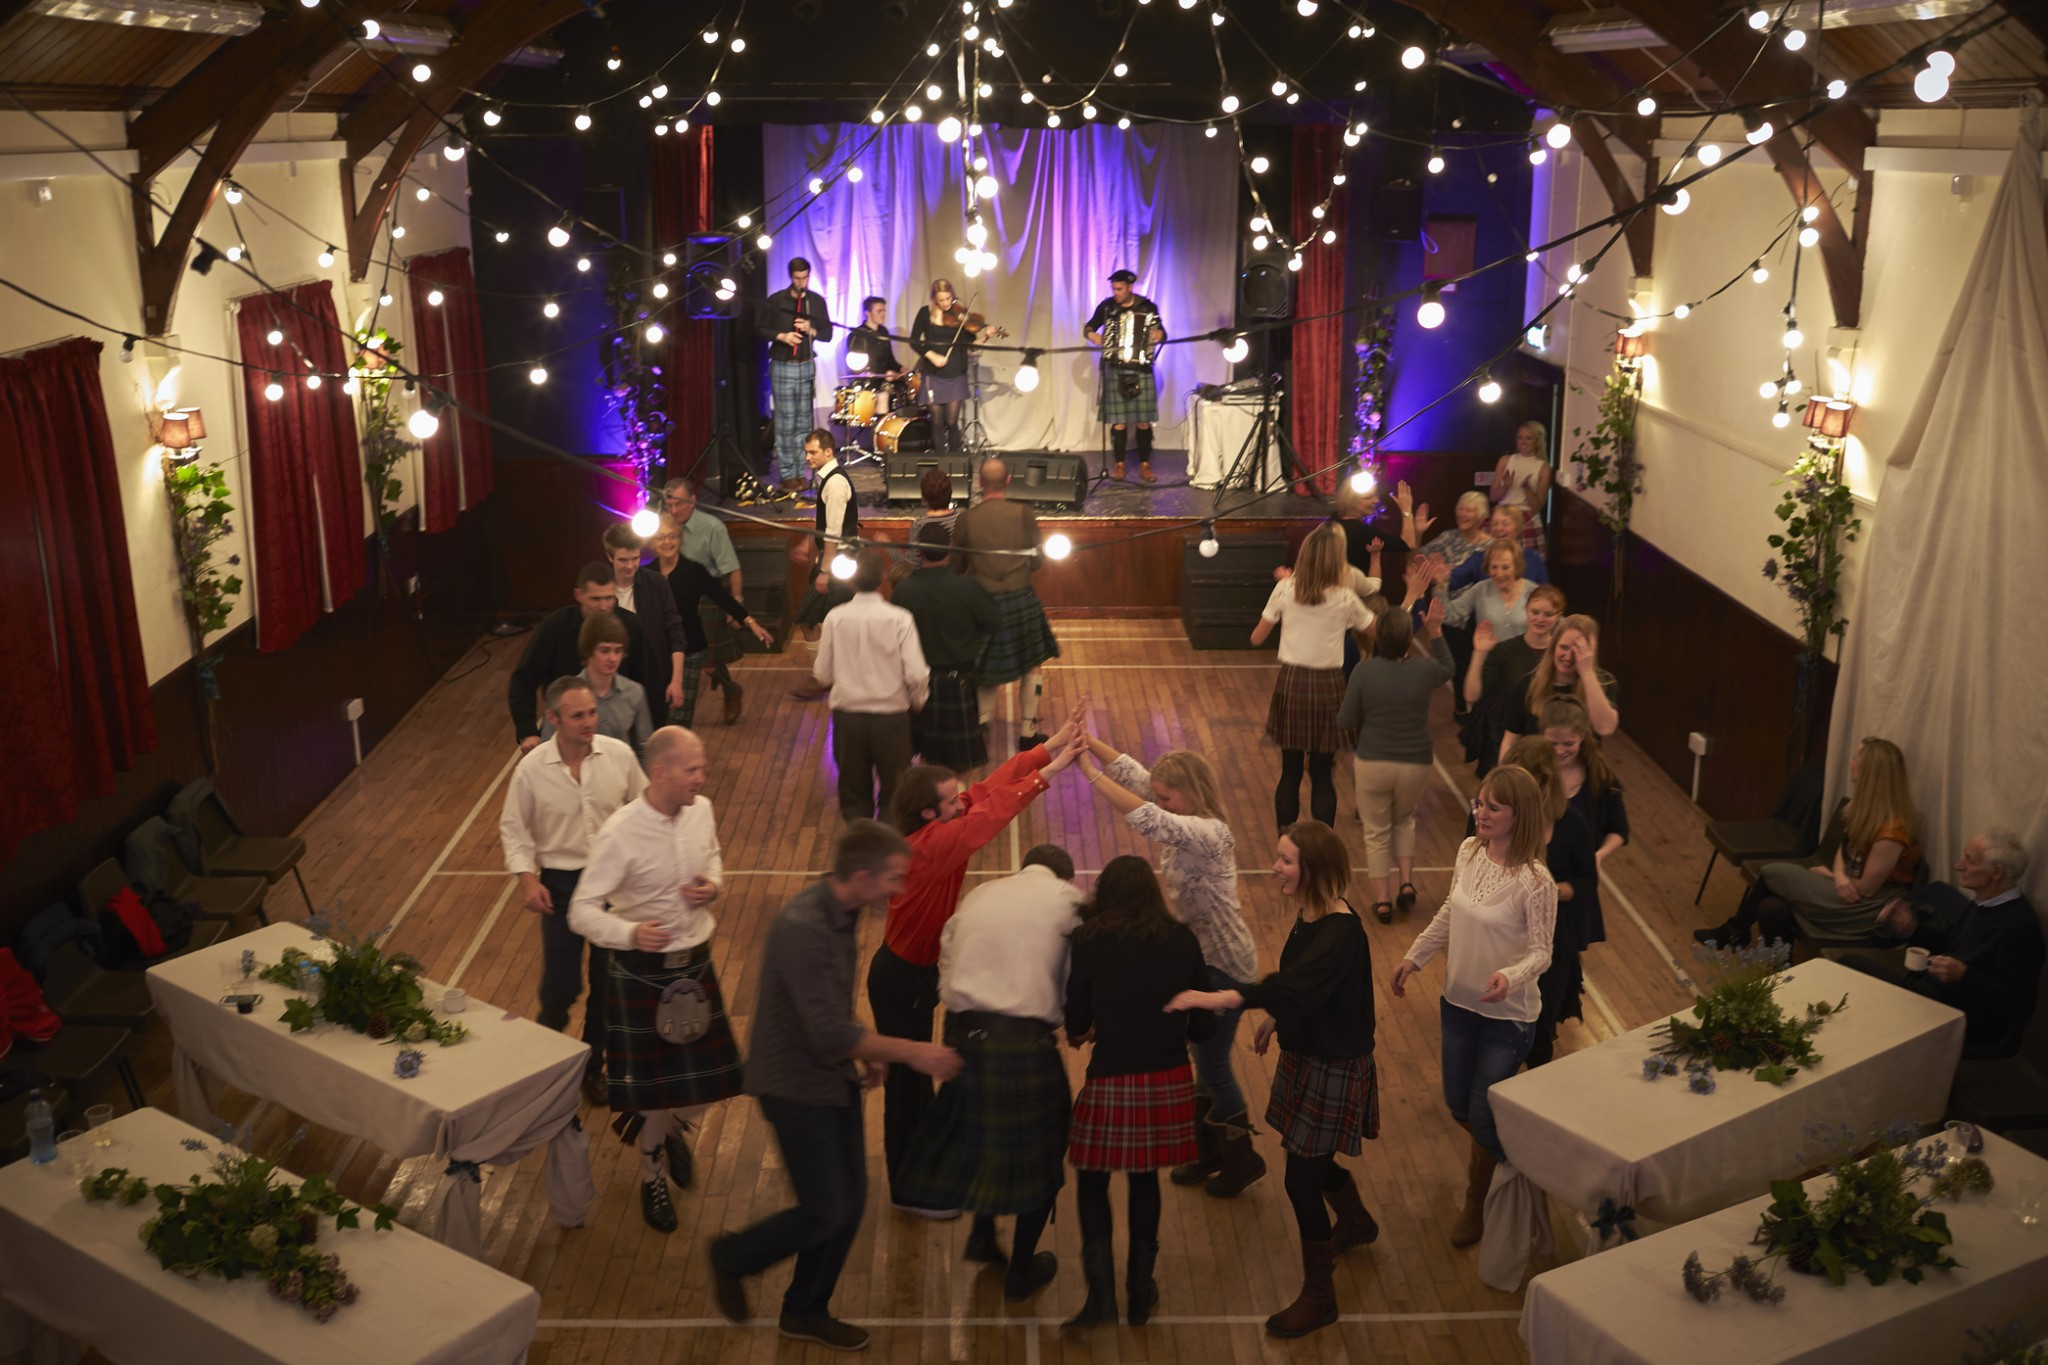 People participate in a traditional Scottish Ceilidh, Fintry Town Hall.